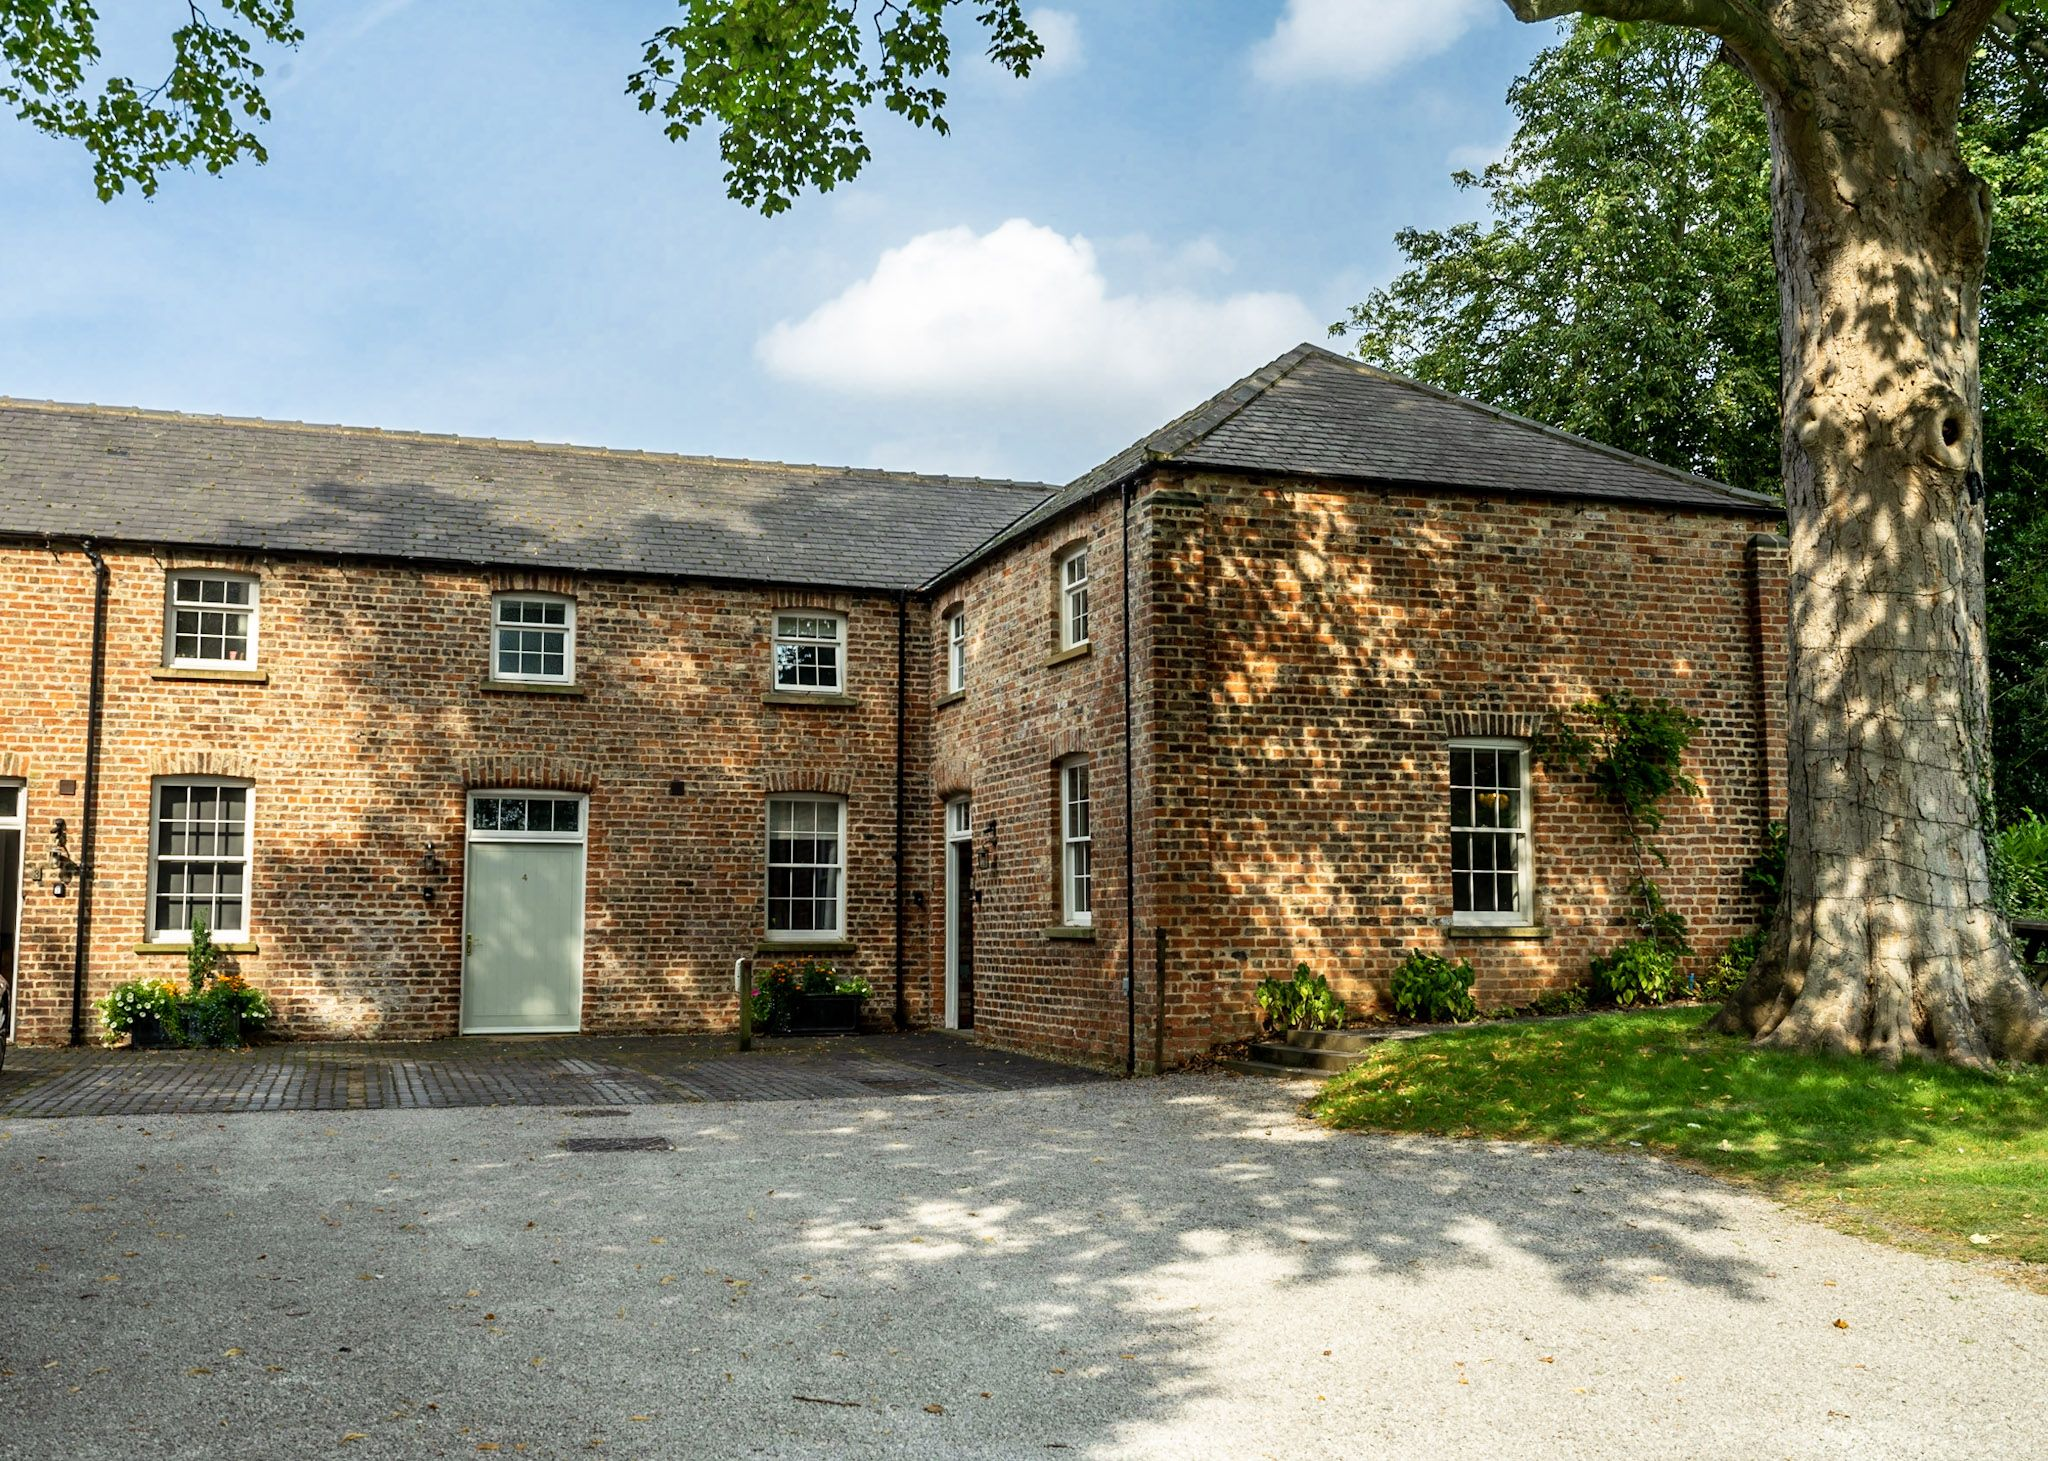 Middlethorpe Manor Cottages- No 4 Relaxation and Peace